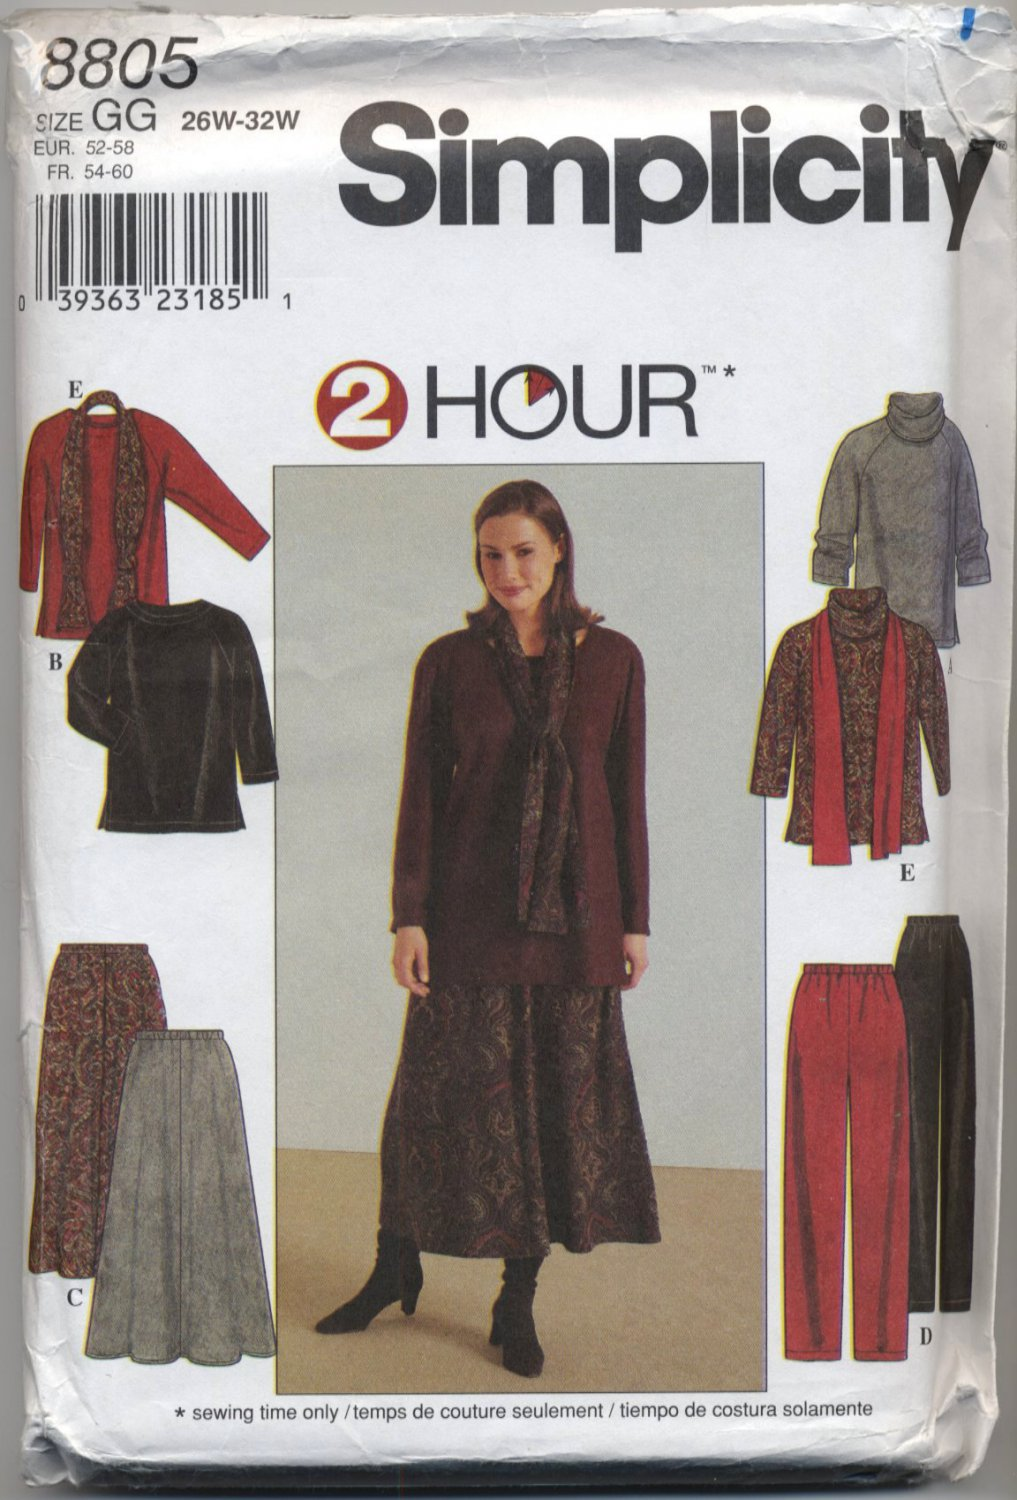 Simplicity 8805 Top, Skirt, Pants & Scarf - Wovens & Knits - Sewing Pattern Women's 26W 28W 30W 32W